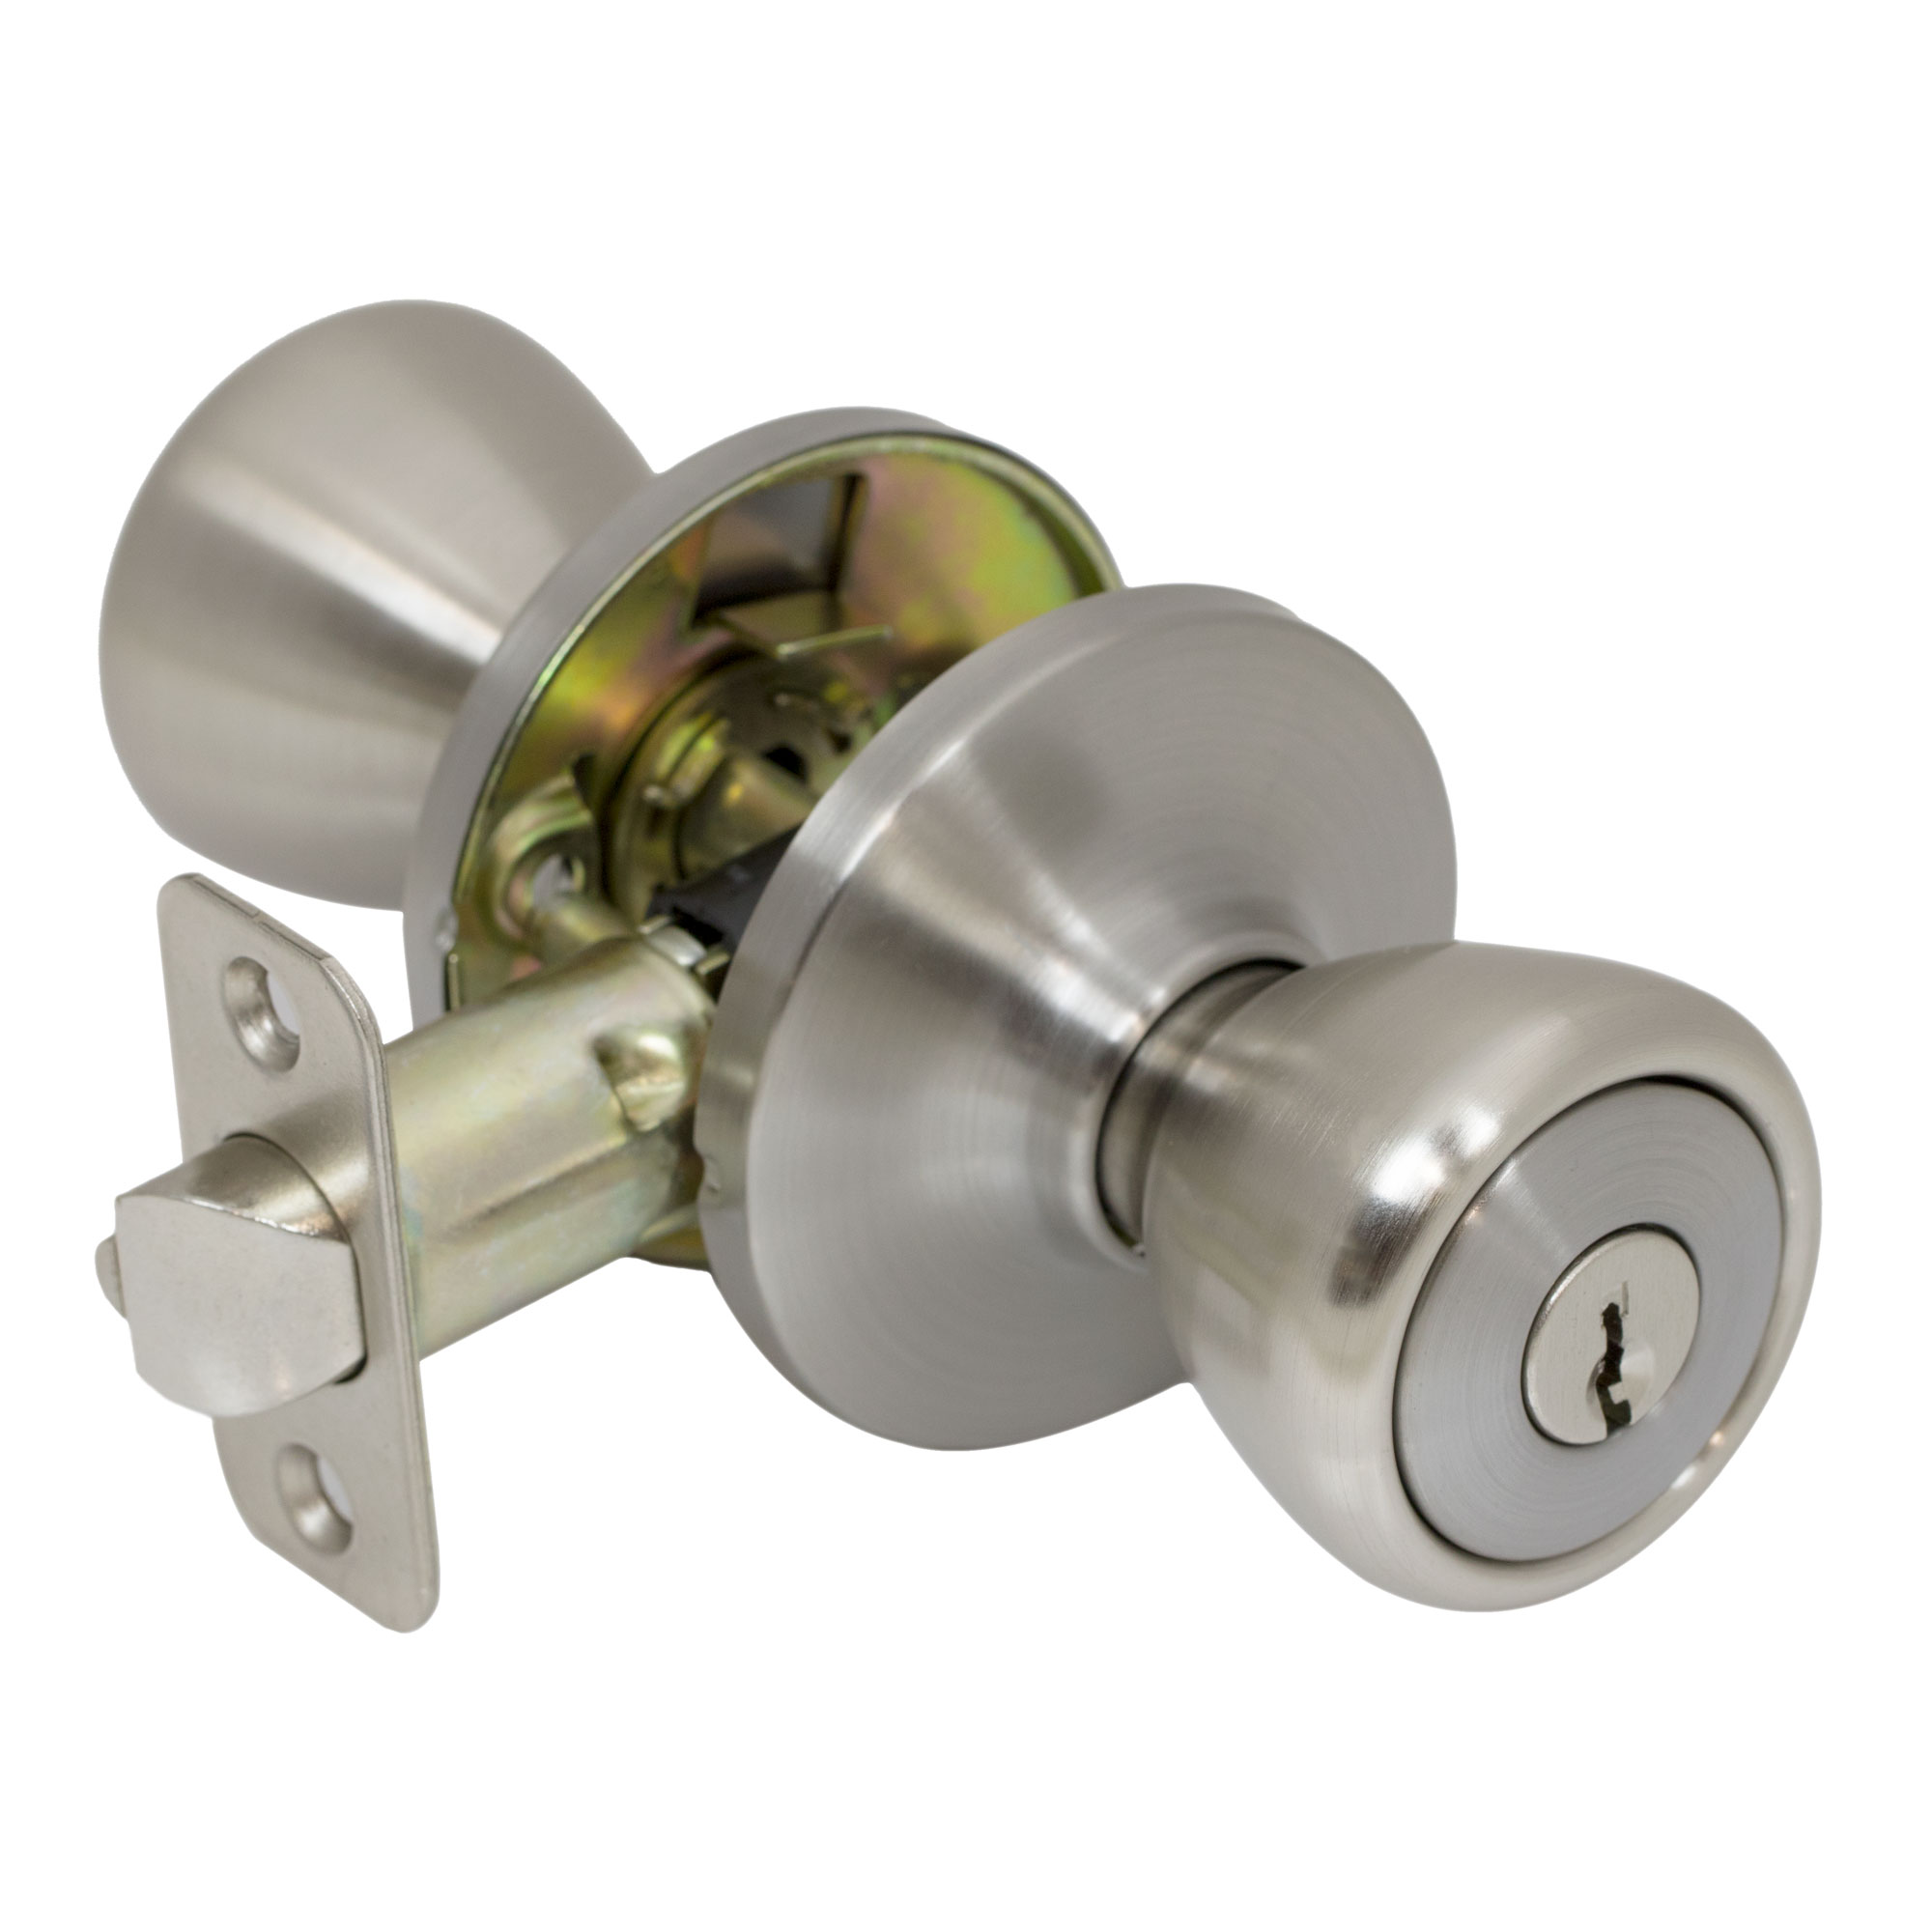 Pro Grade Classic Round Keyed Entry Door Knob Handle Lockset, Satin Nickel    Walmart.com